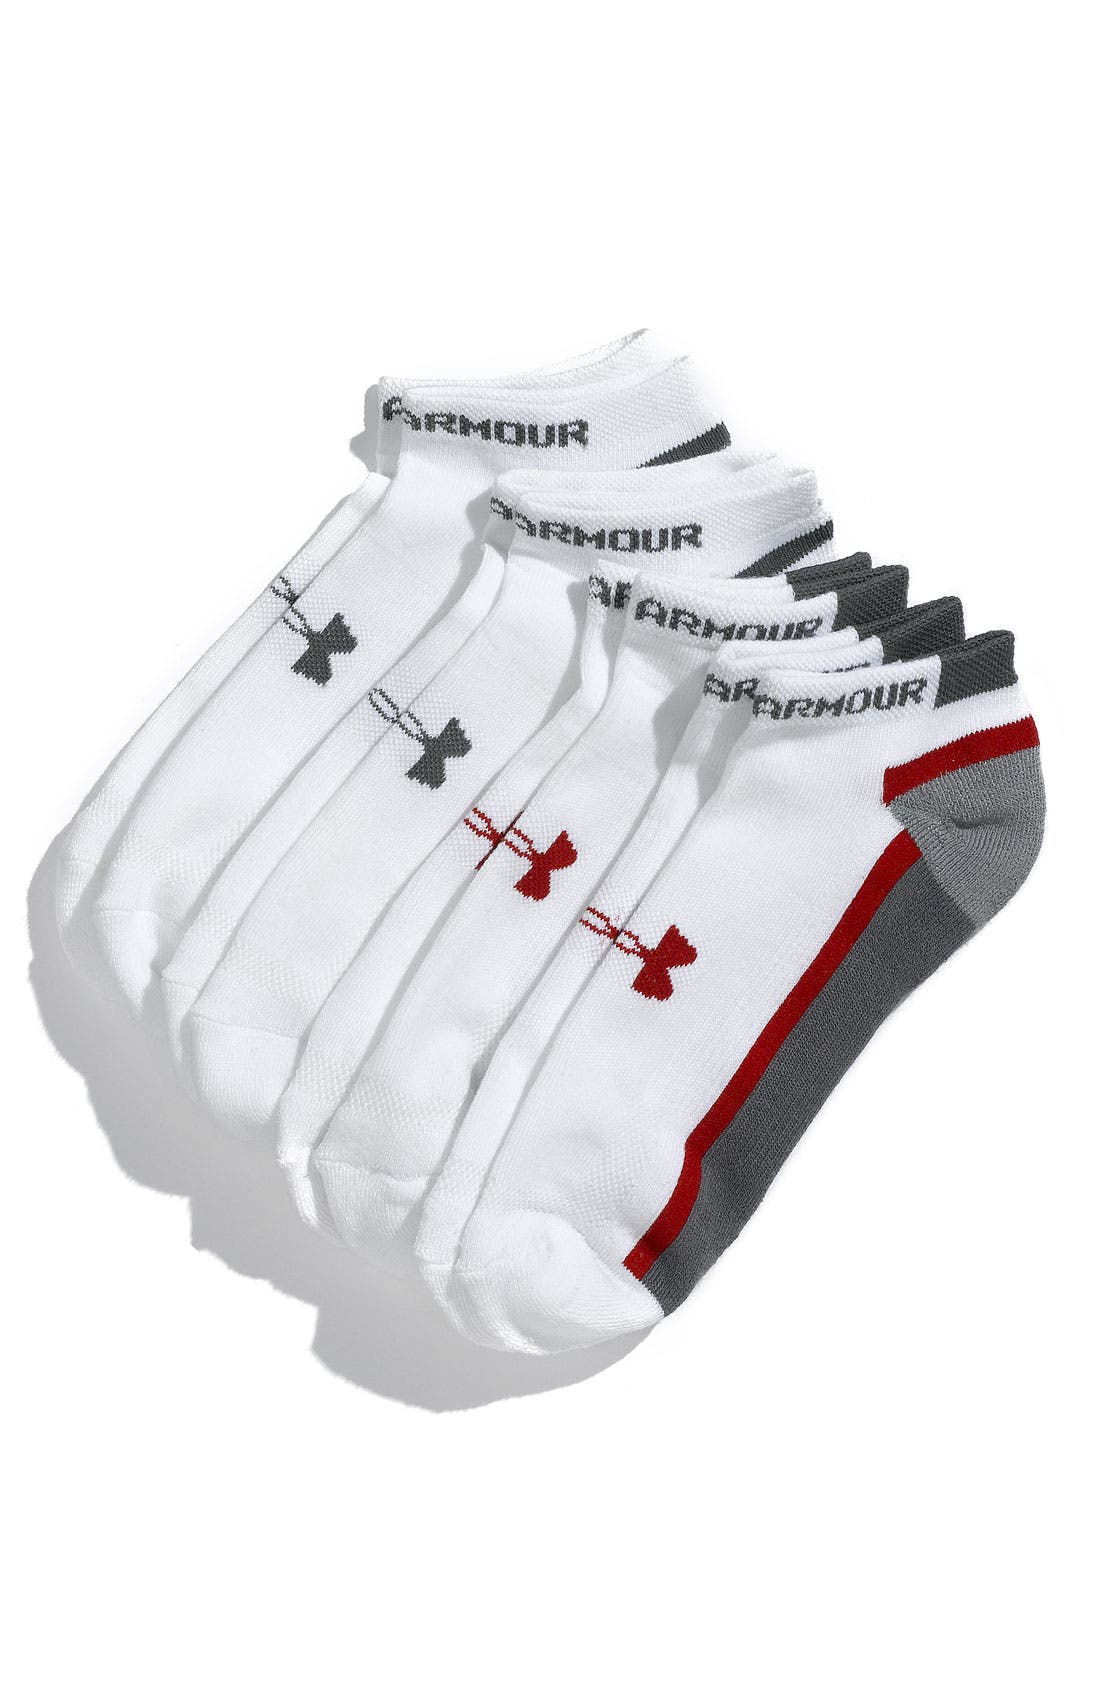 Alternate Image 1 Selected - Under Armour 'Beyond Now' Socks